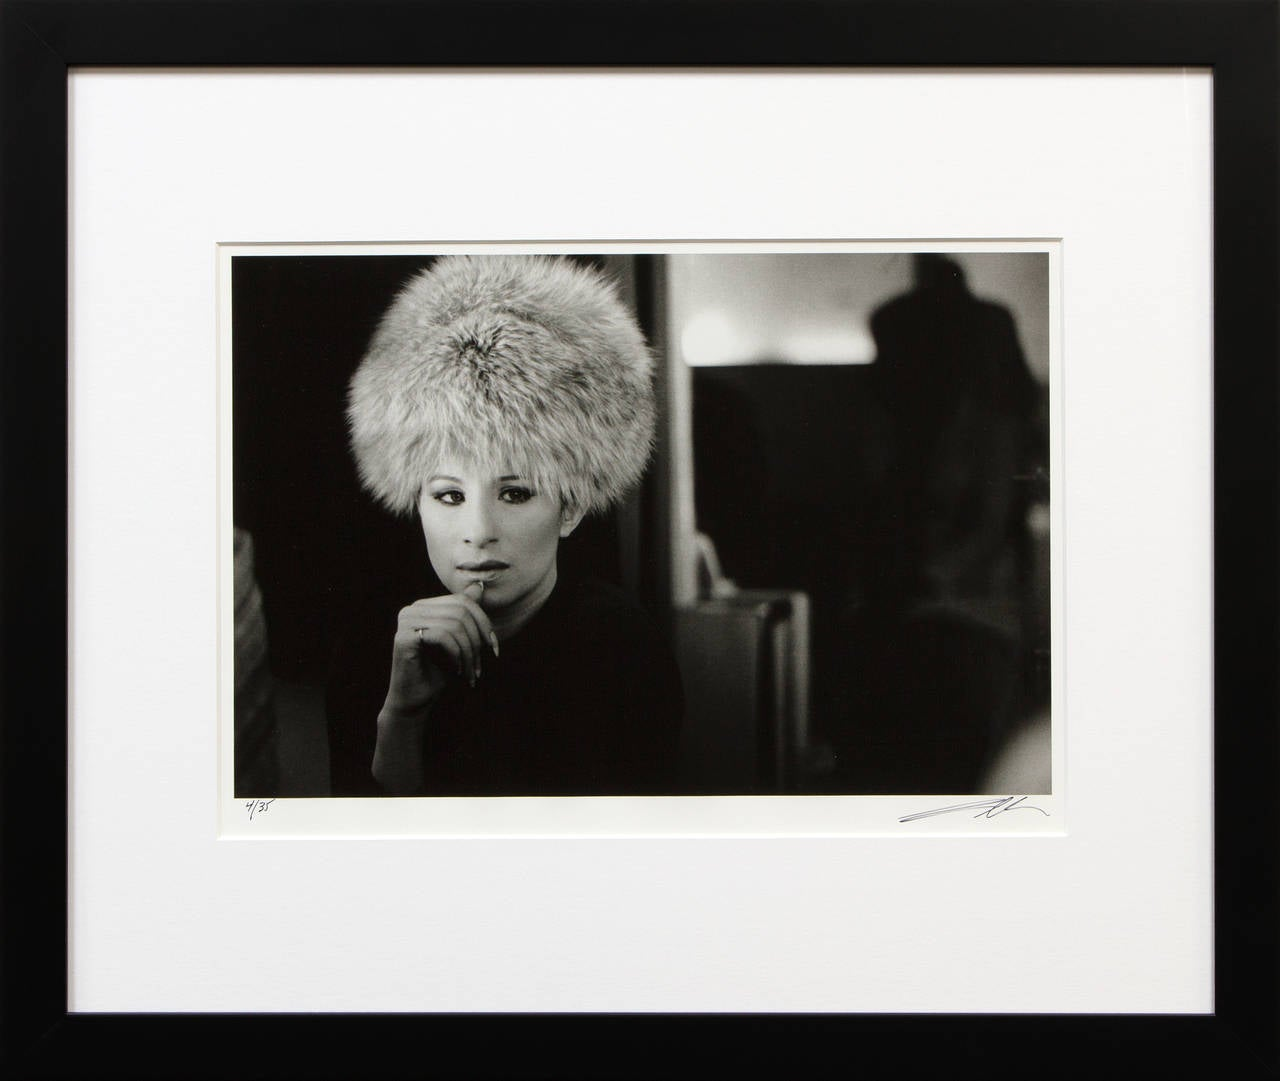 Untitled (Barbra Streisand) - Photograph by Lawrence Schiller